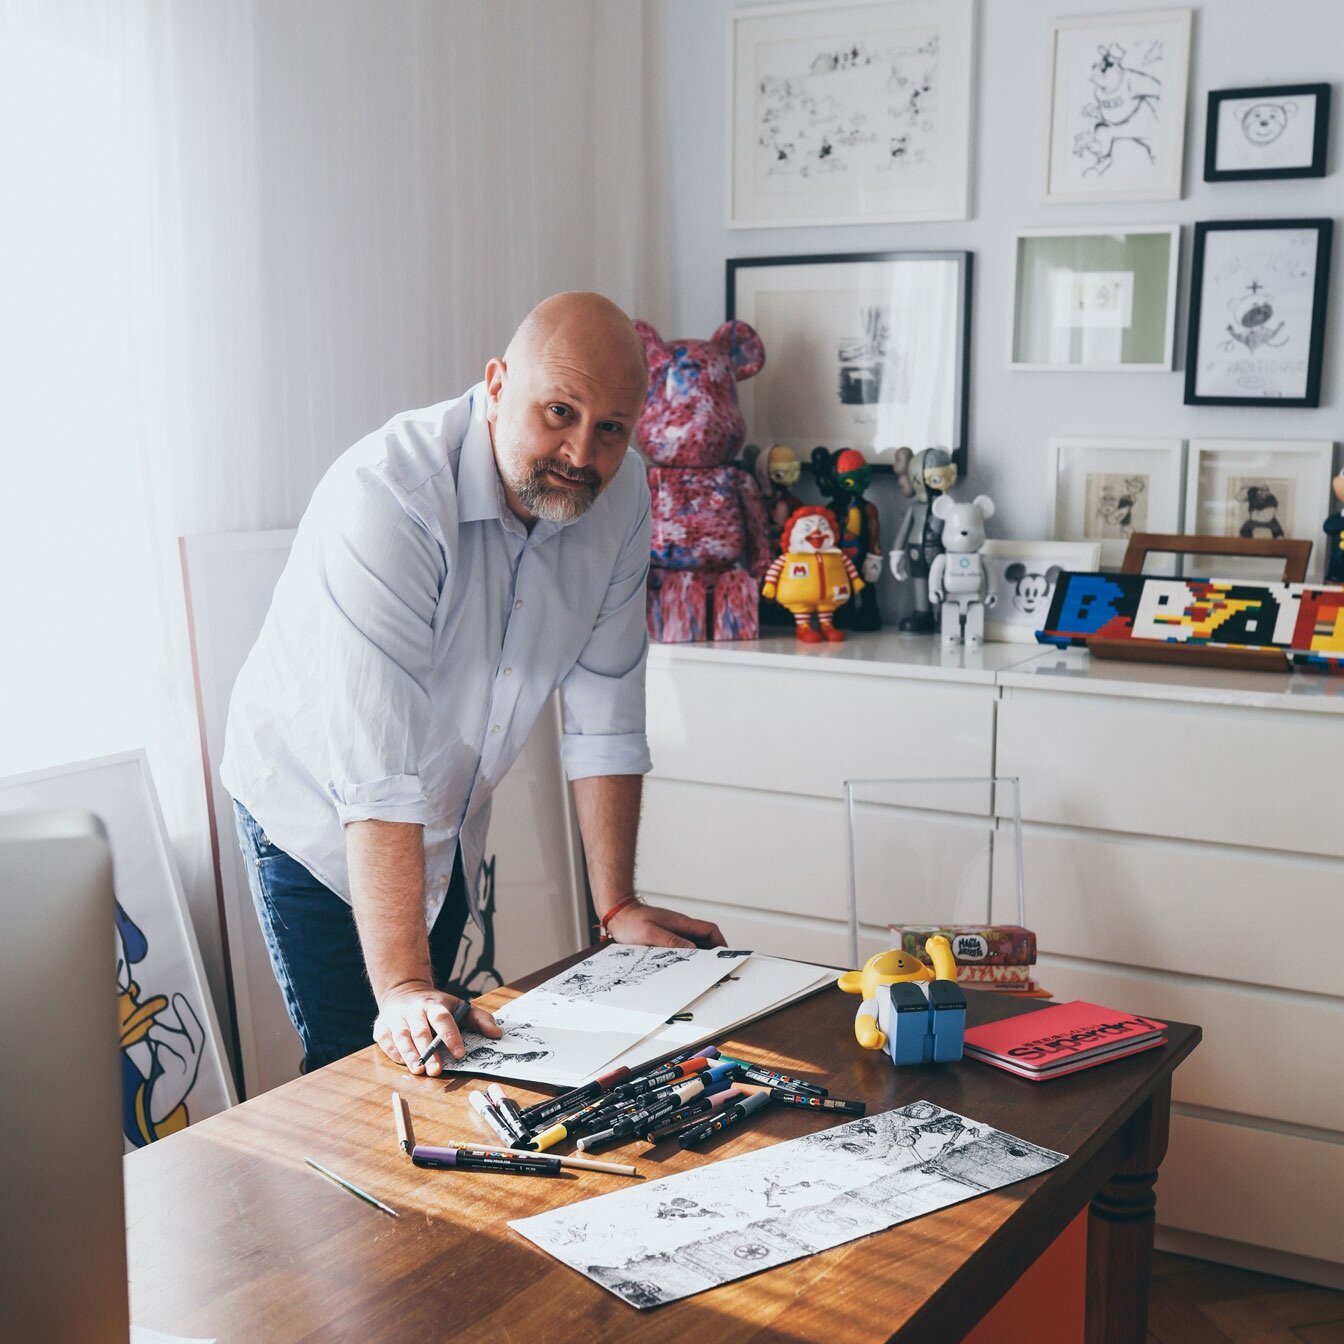 Say hi to Jean, - an artist who draws and makes figurines of cartoon characters with his own special twist. He leaned into the vulnerability, followed my Instagram strategies, and within 1 week he booked a well known gallery in Hong Kong to exhibit his artwork.